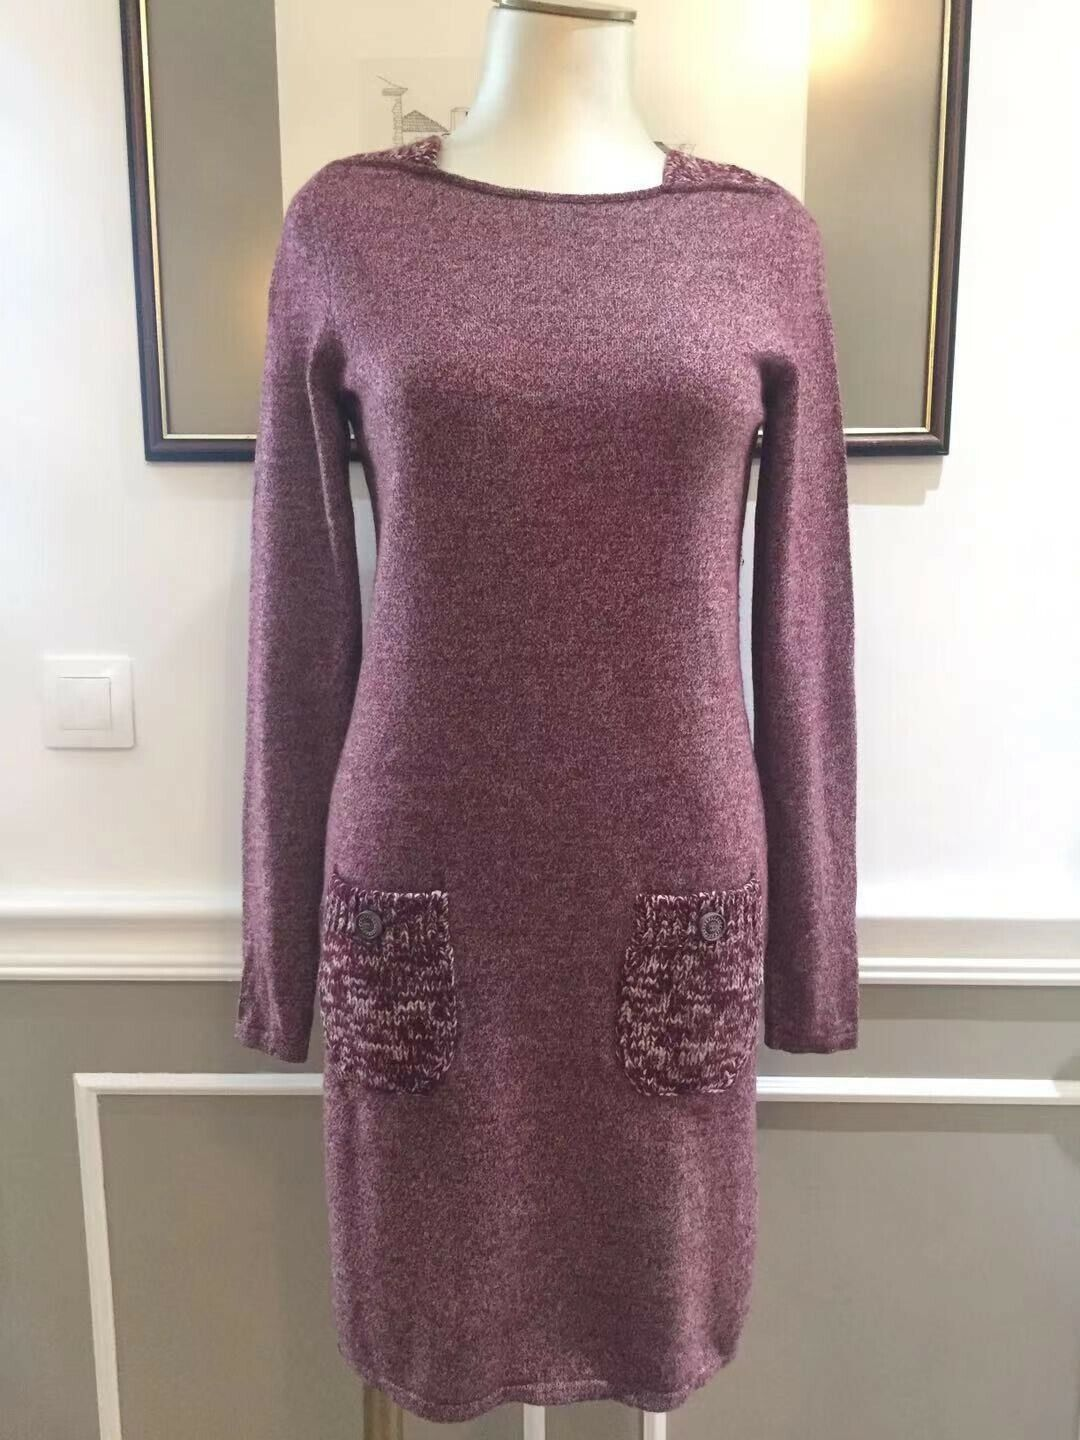 Authentique chanel robe cachemire / pre-owned chanel cashmere knit dress